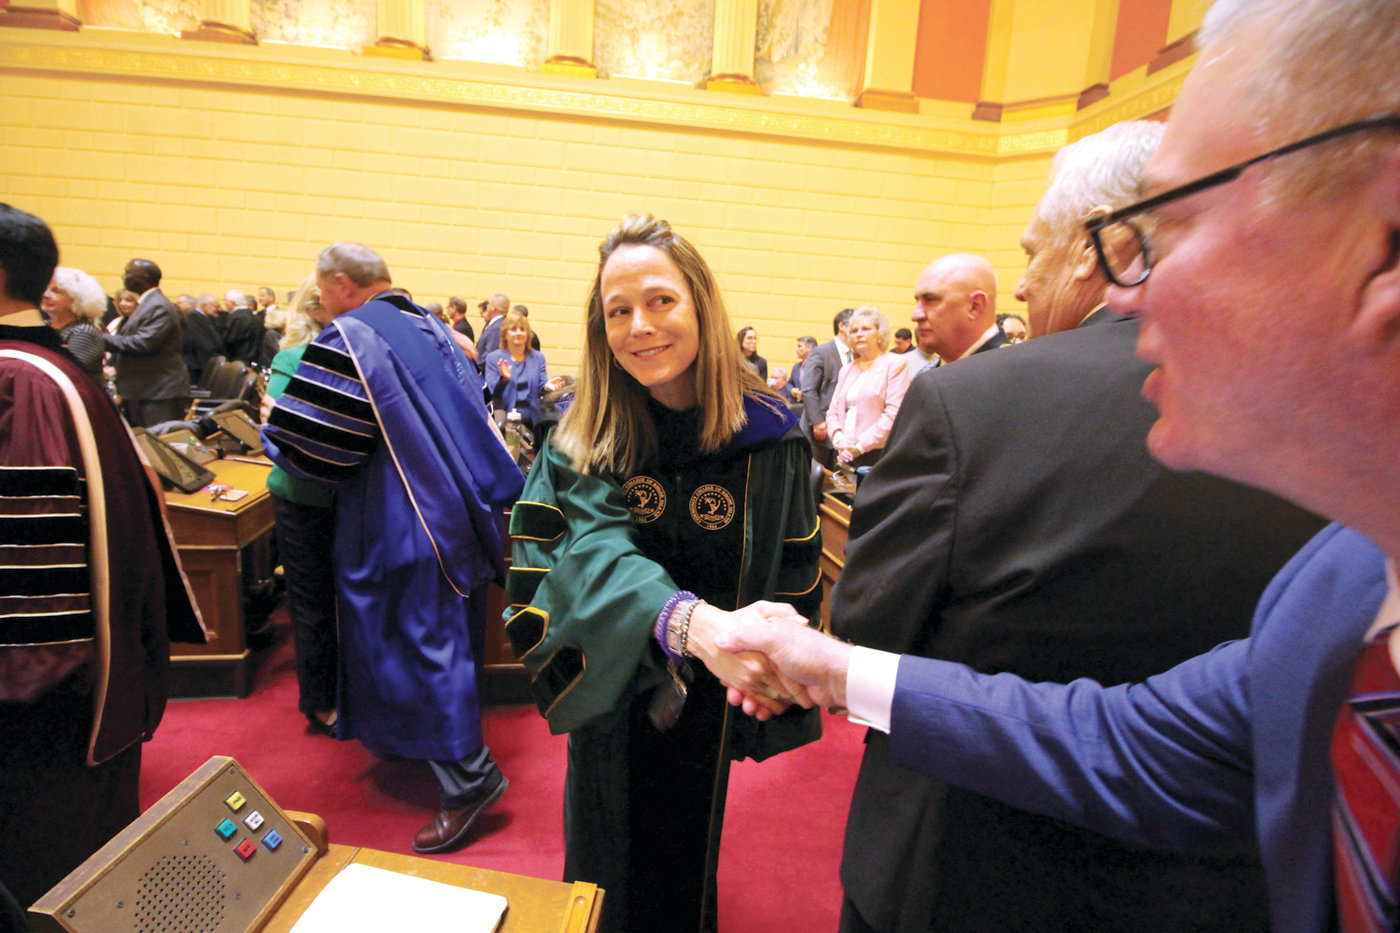 WELCOME: Warwick Rep. Joseph McNamara and fellow legislators greeted state department directors as they entered the chambers Tuesday for the governor's State of the State address. Here, McNamara shakes hands with CCRI President Meghan Hughes.